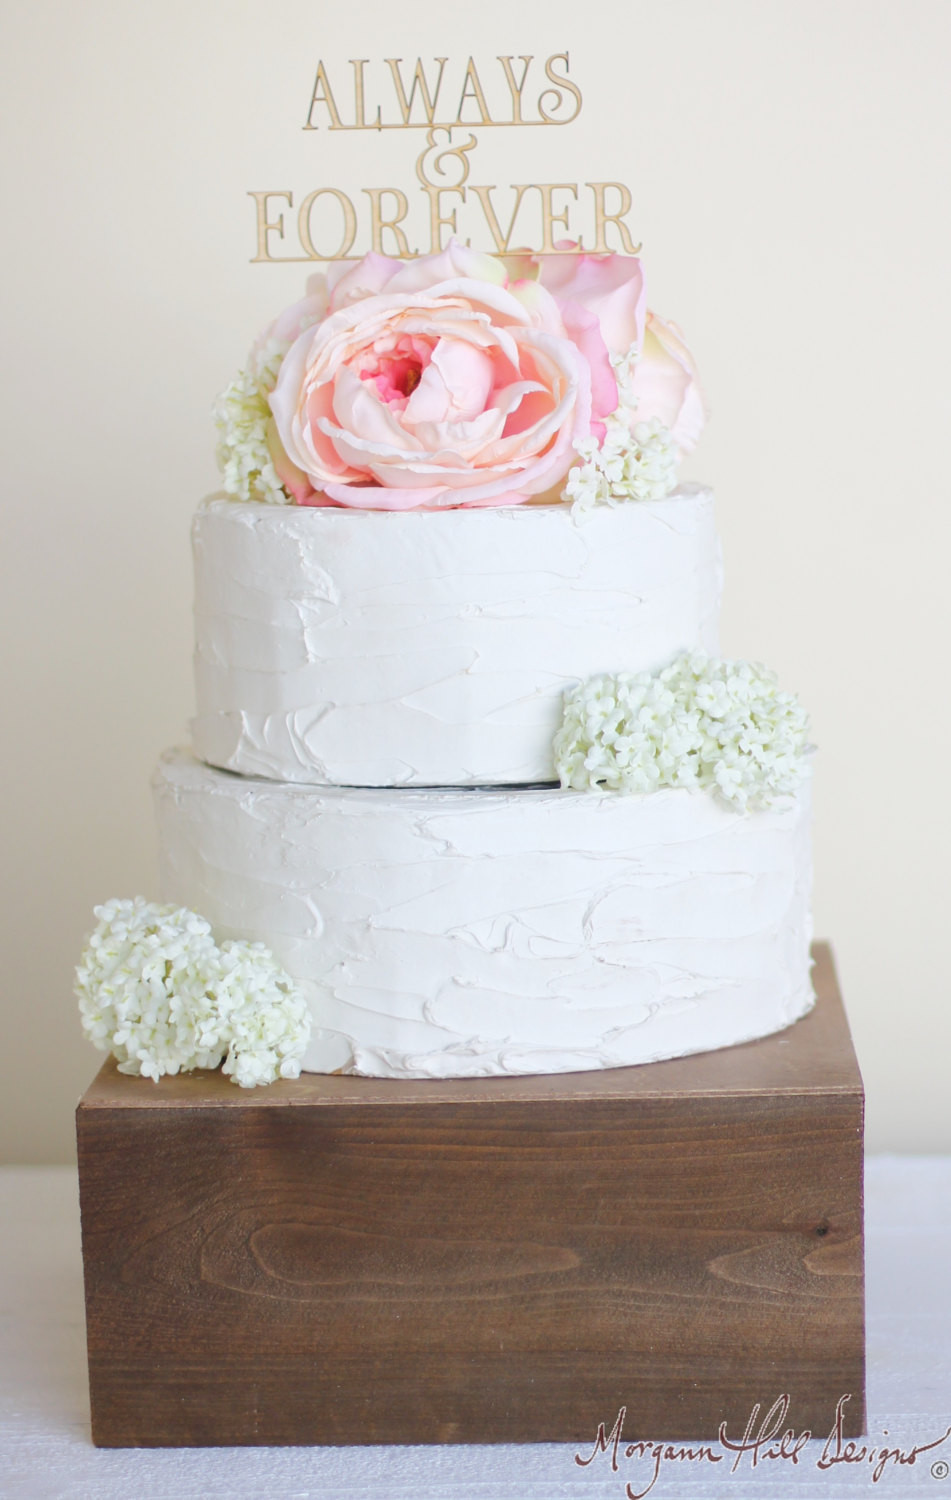 Wedding Cakes With Toppers  27 of the Cutest Wedding Cake Toppers You ll Ever See